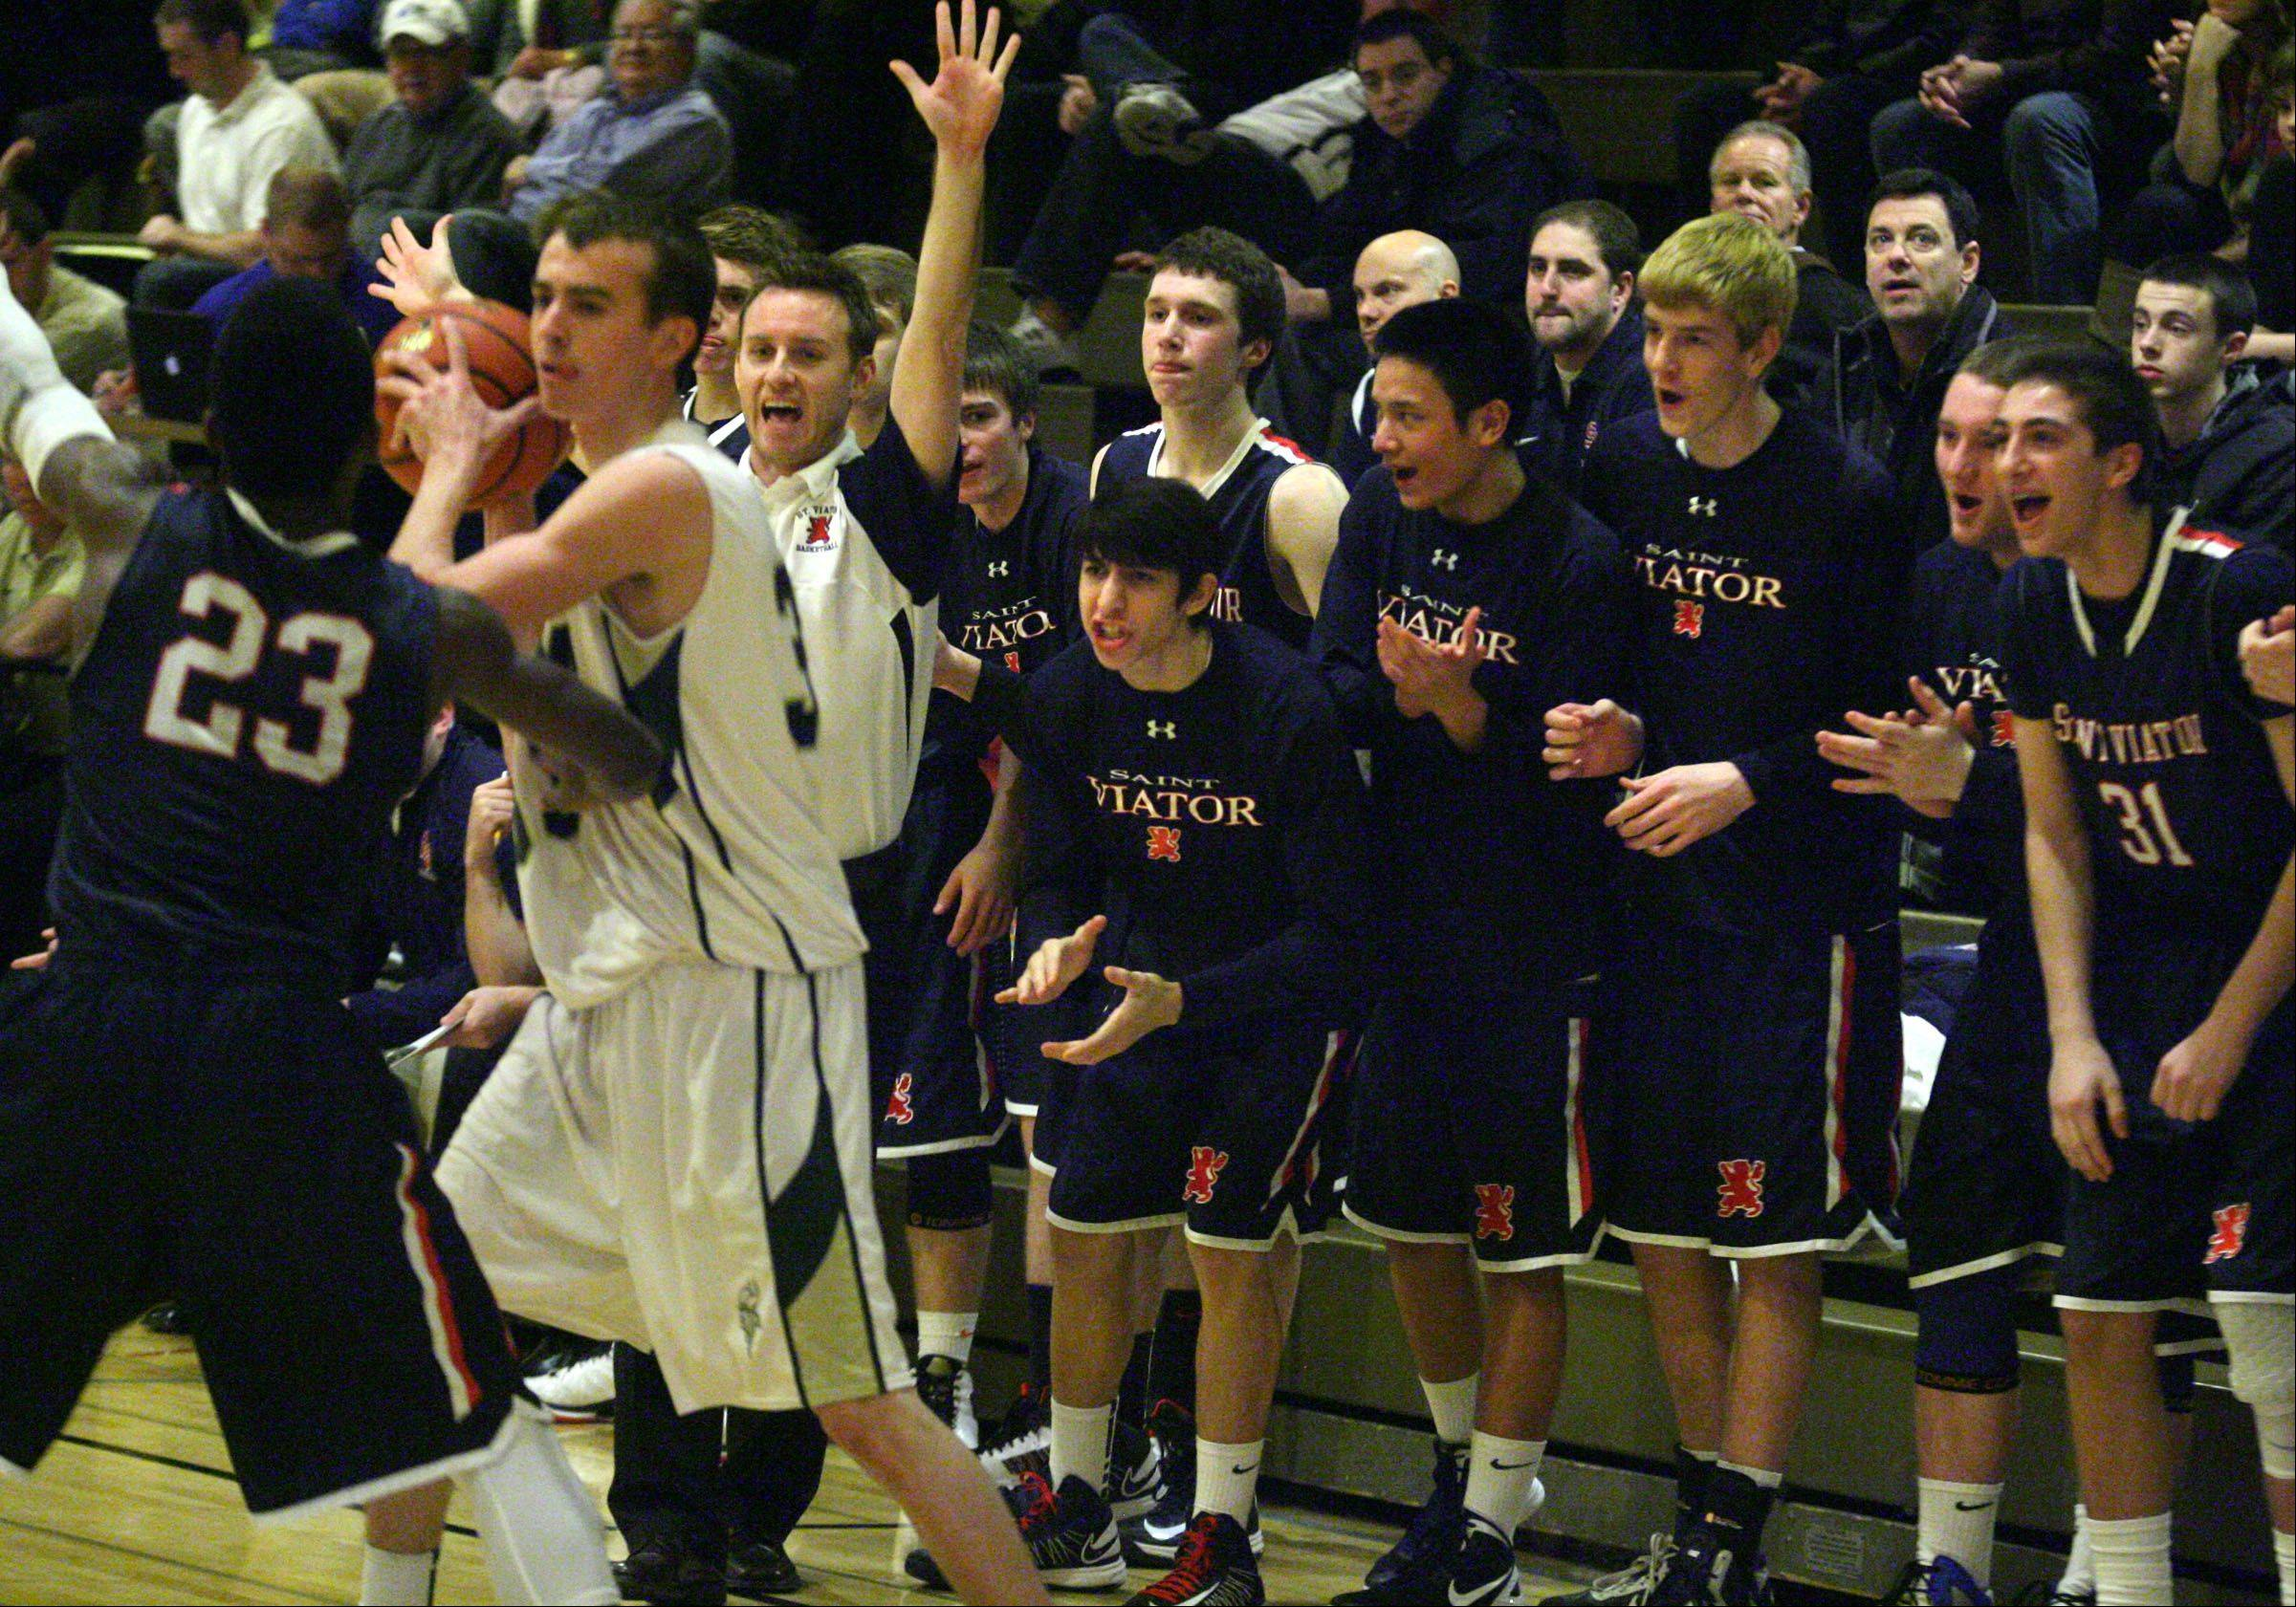 Images: Fremd vs. St. Viator, boys basketball